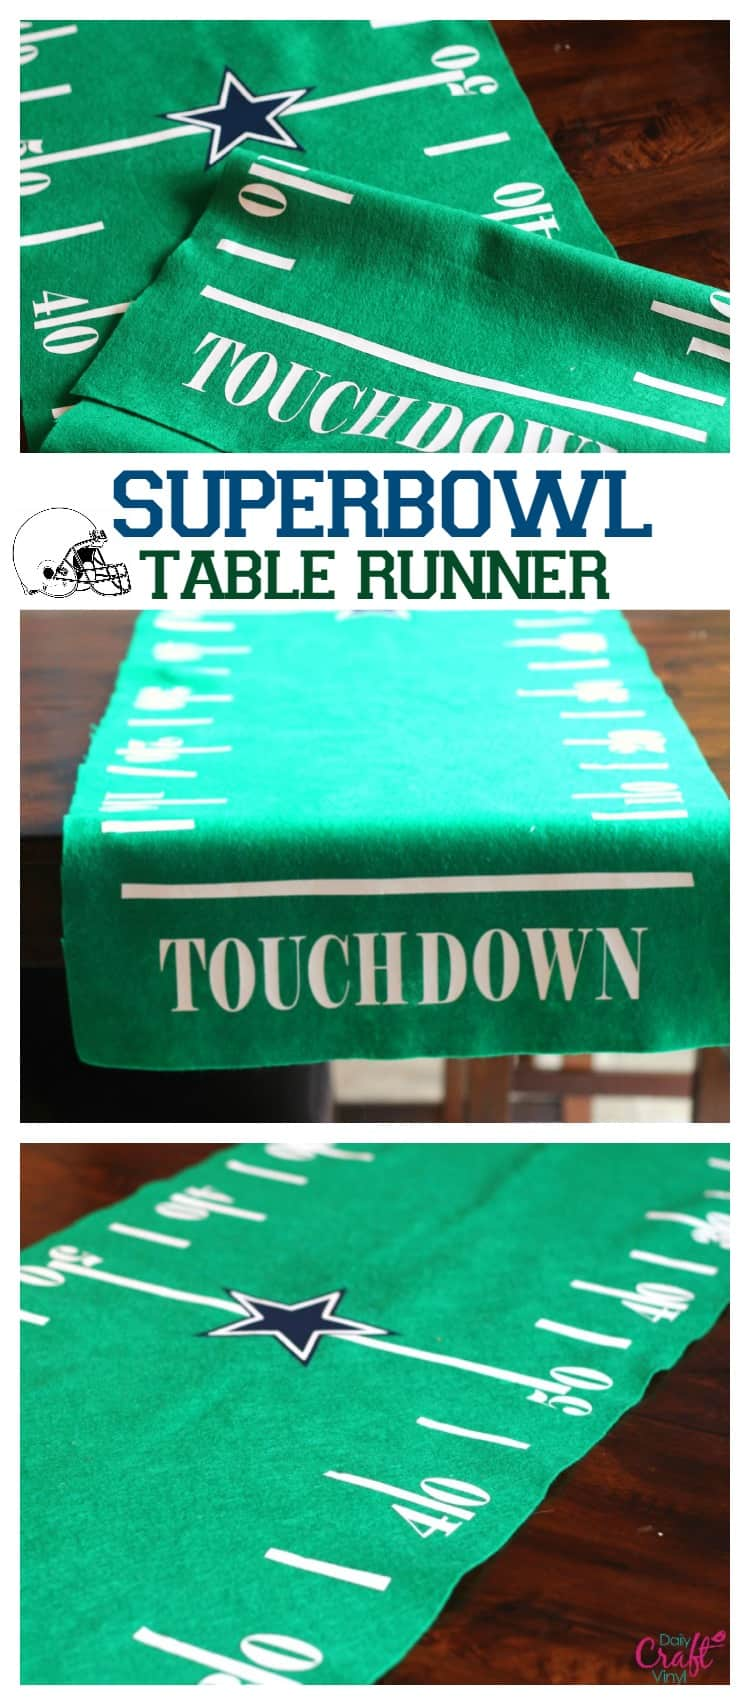 superbowl football field table runner with heat transfer vinyl daily craft vinyl blog